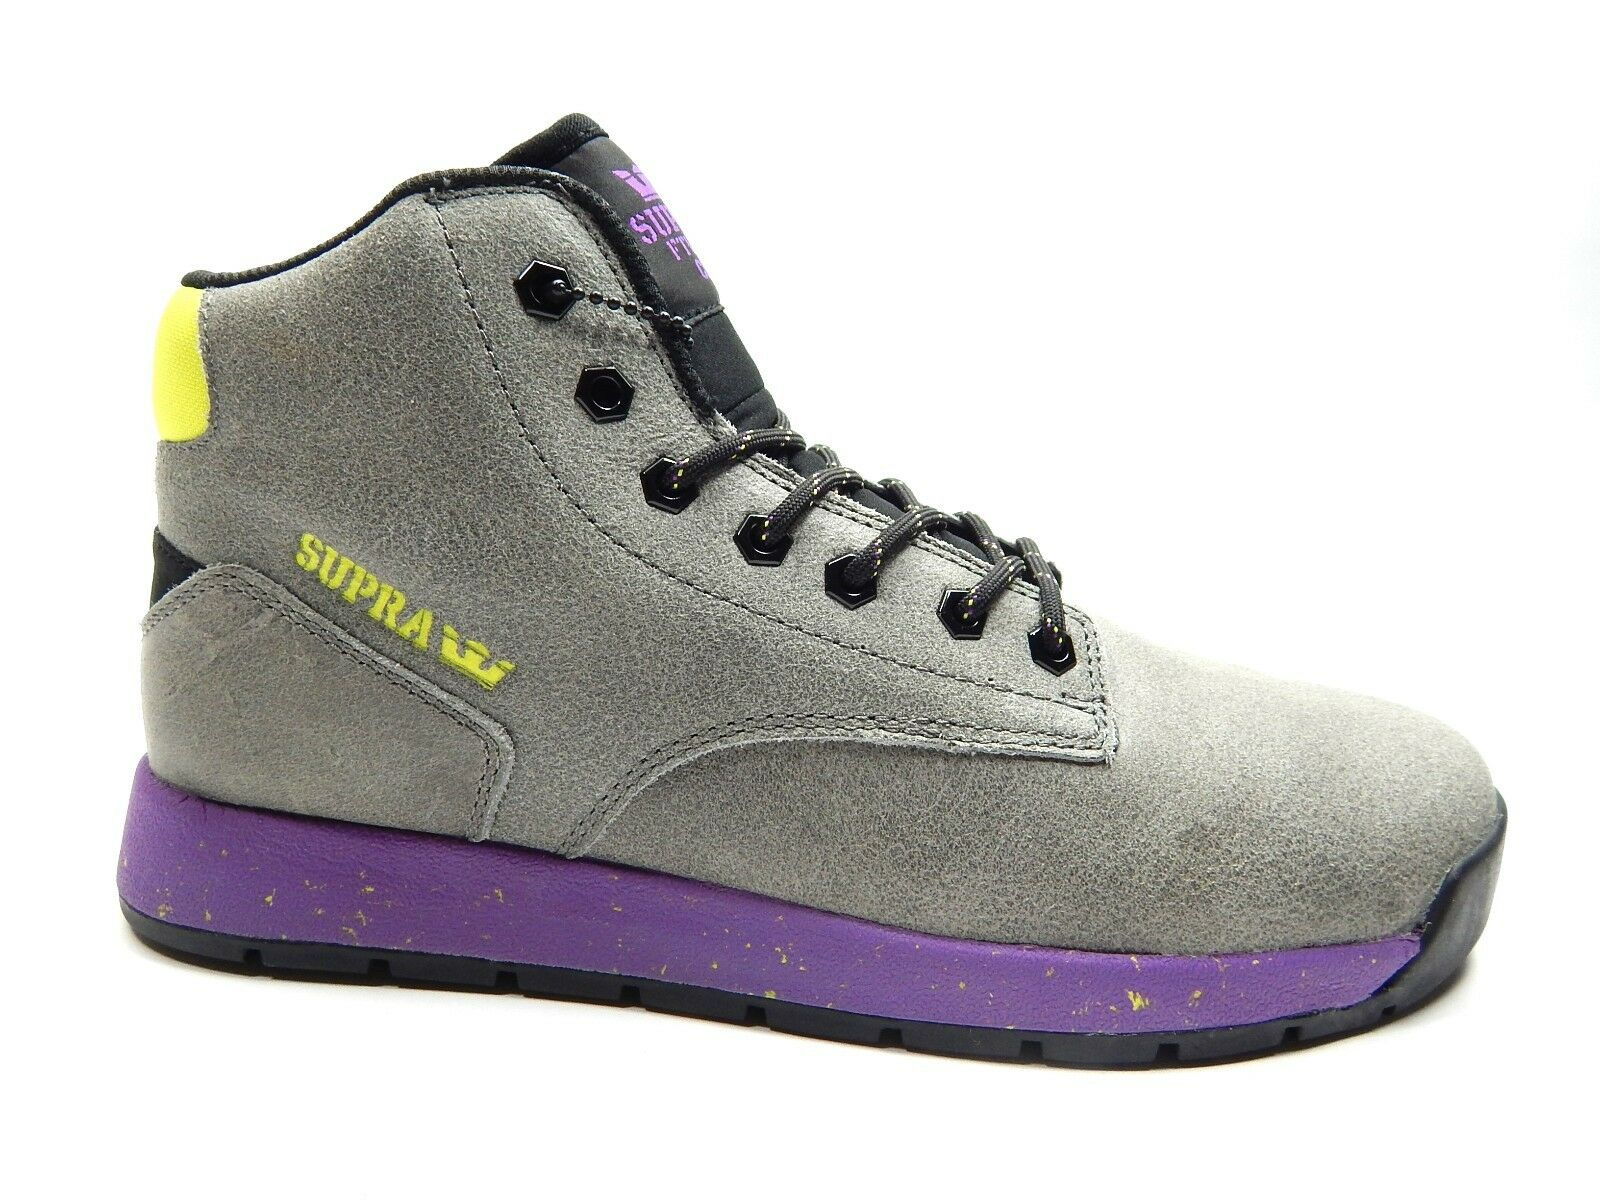 SUPRA BACKWOOD CHARCOAL PURPLE hommes Chaussures SIZE 8 TO 12